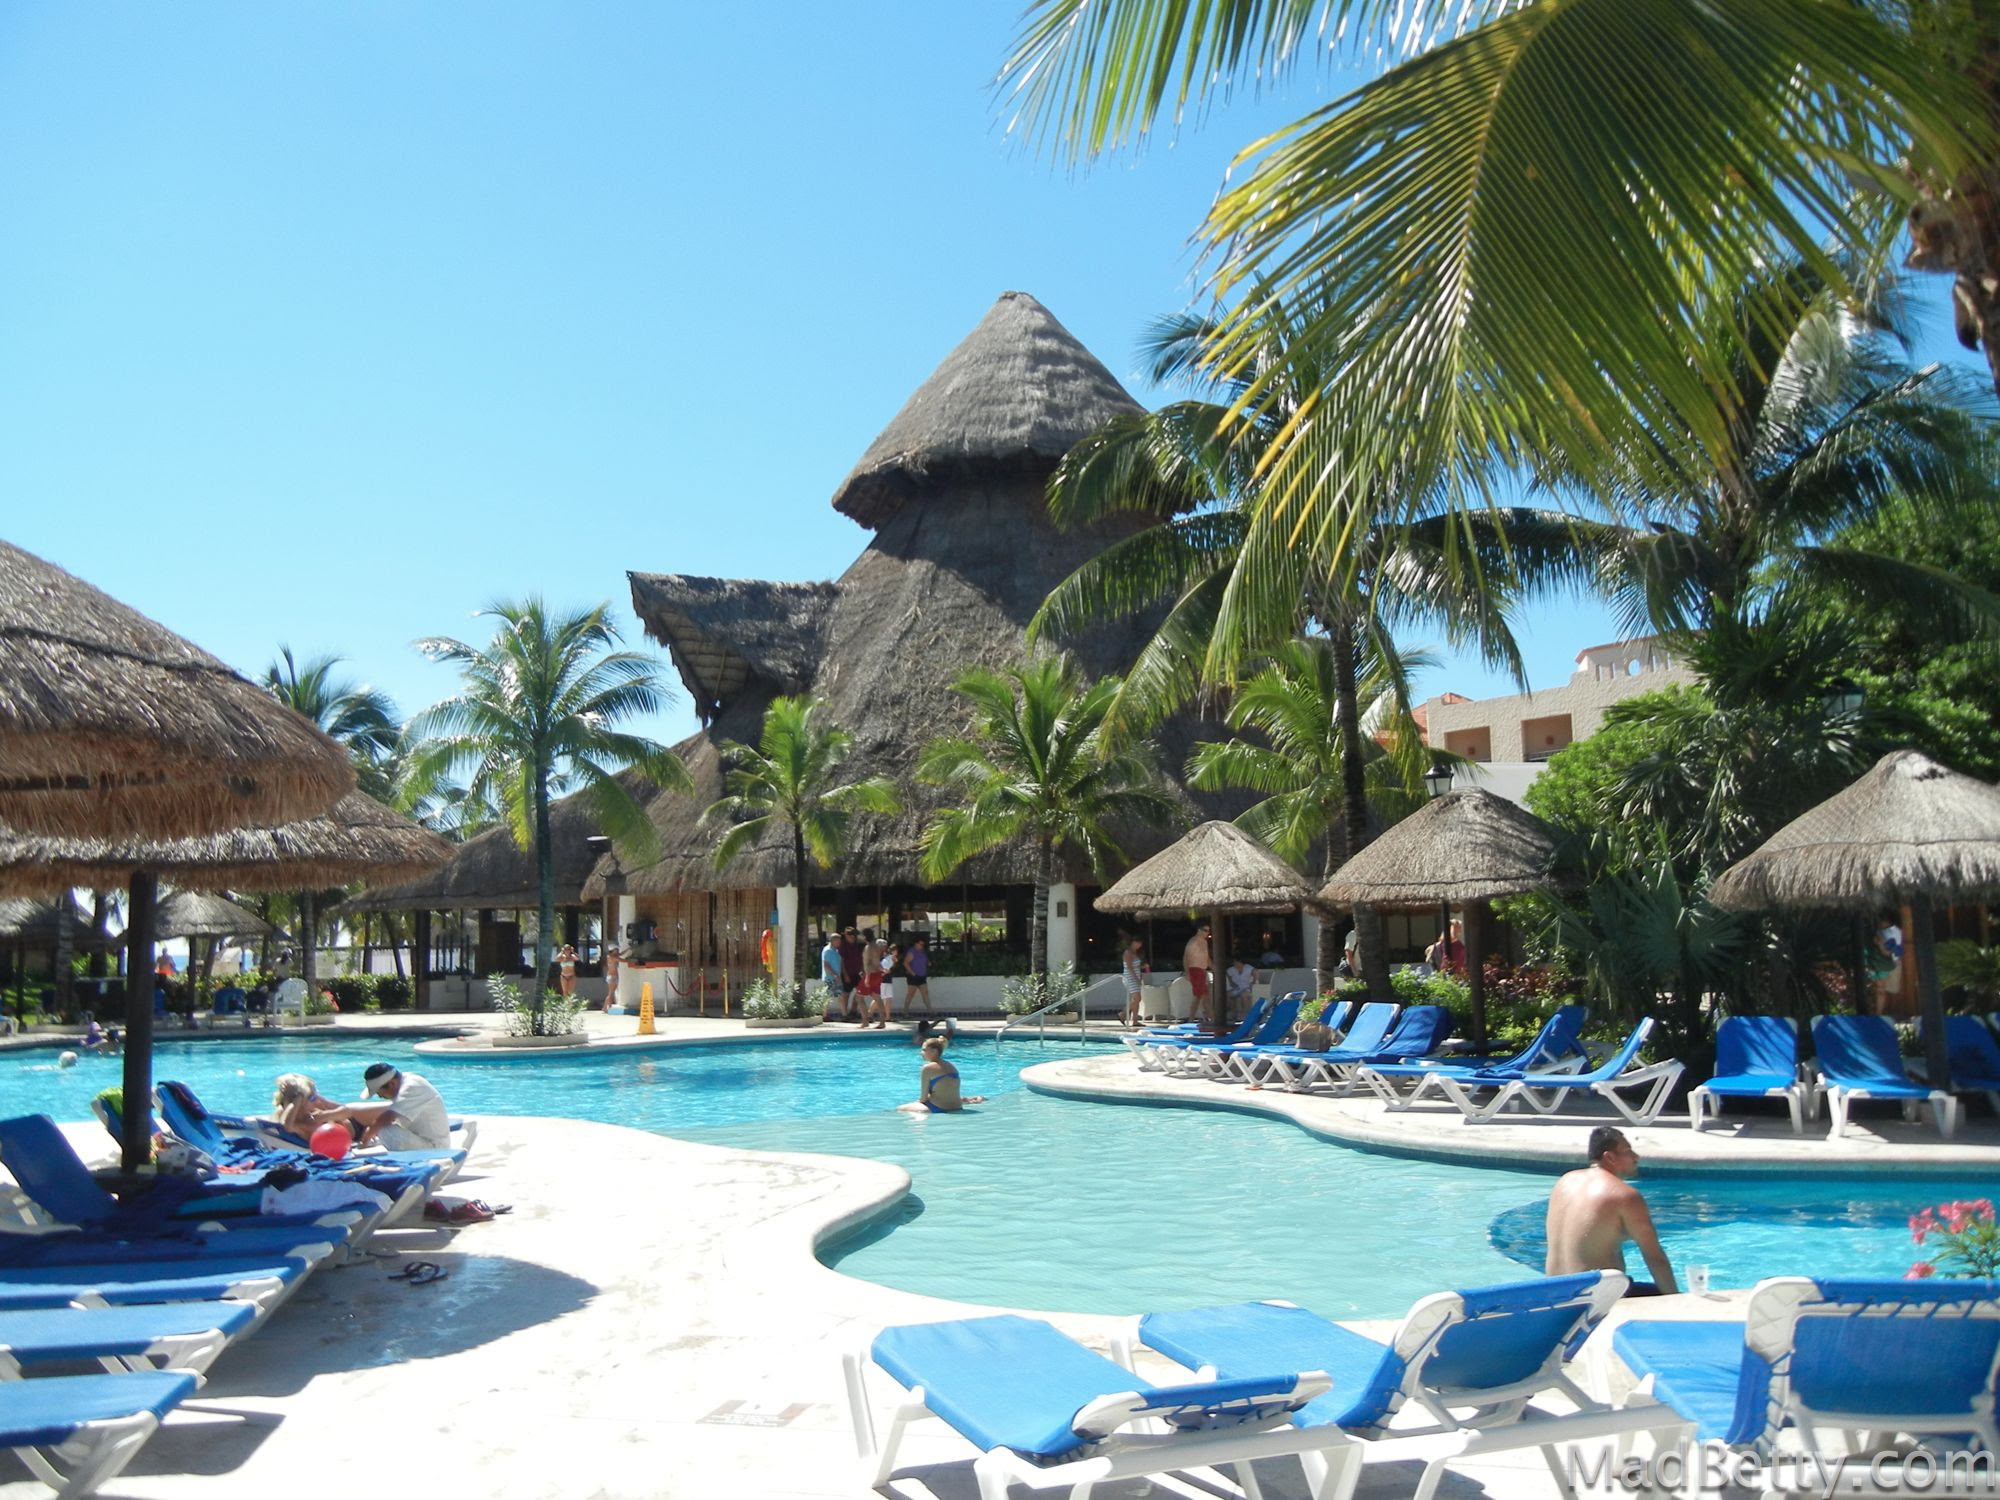 Our Mexican Getaway